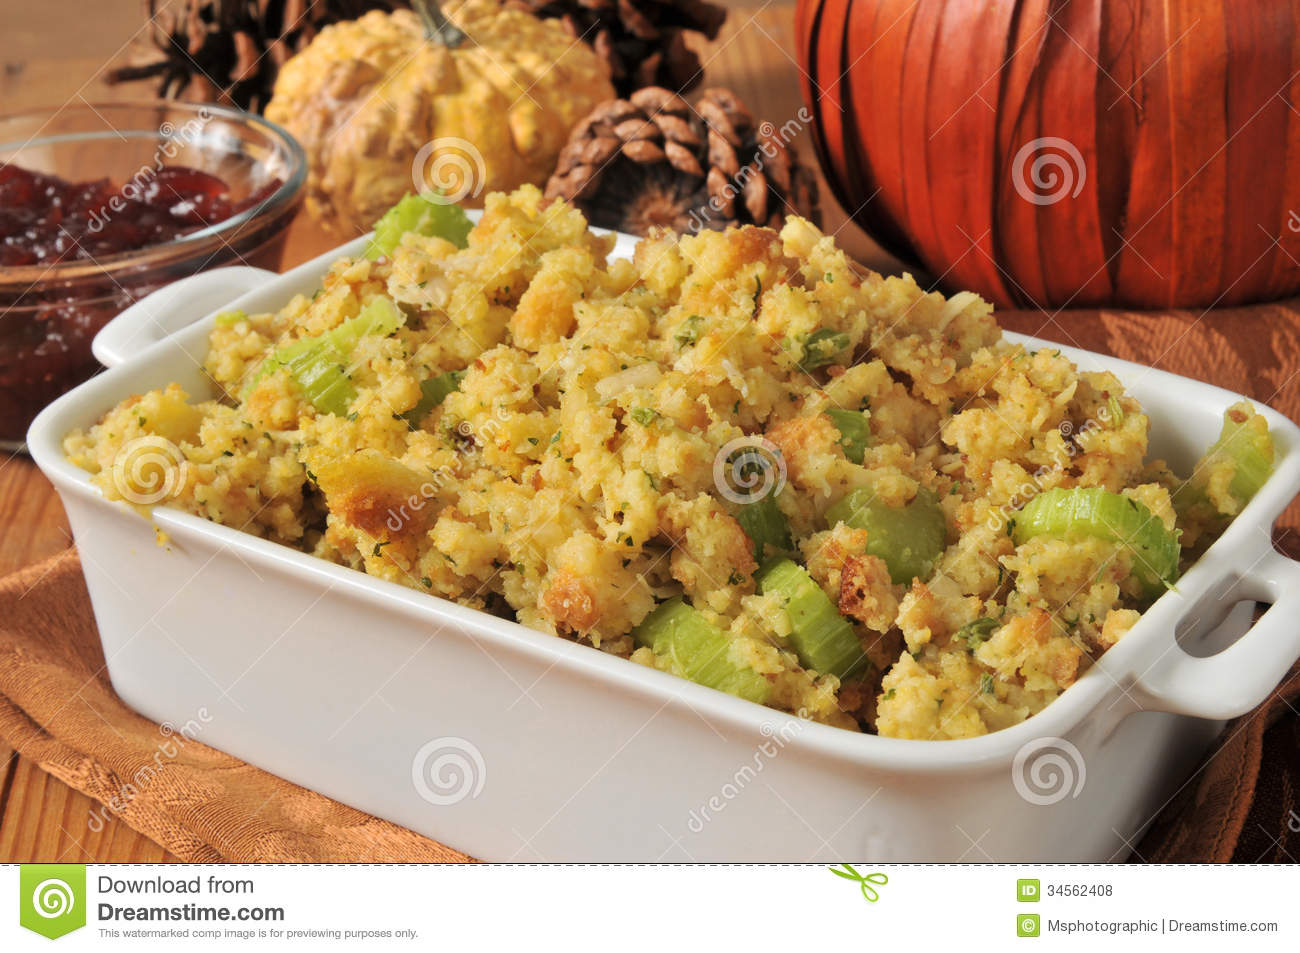 Cornbread Stuffing Royalty Free Stock Photos   Image  34562408